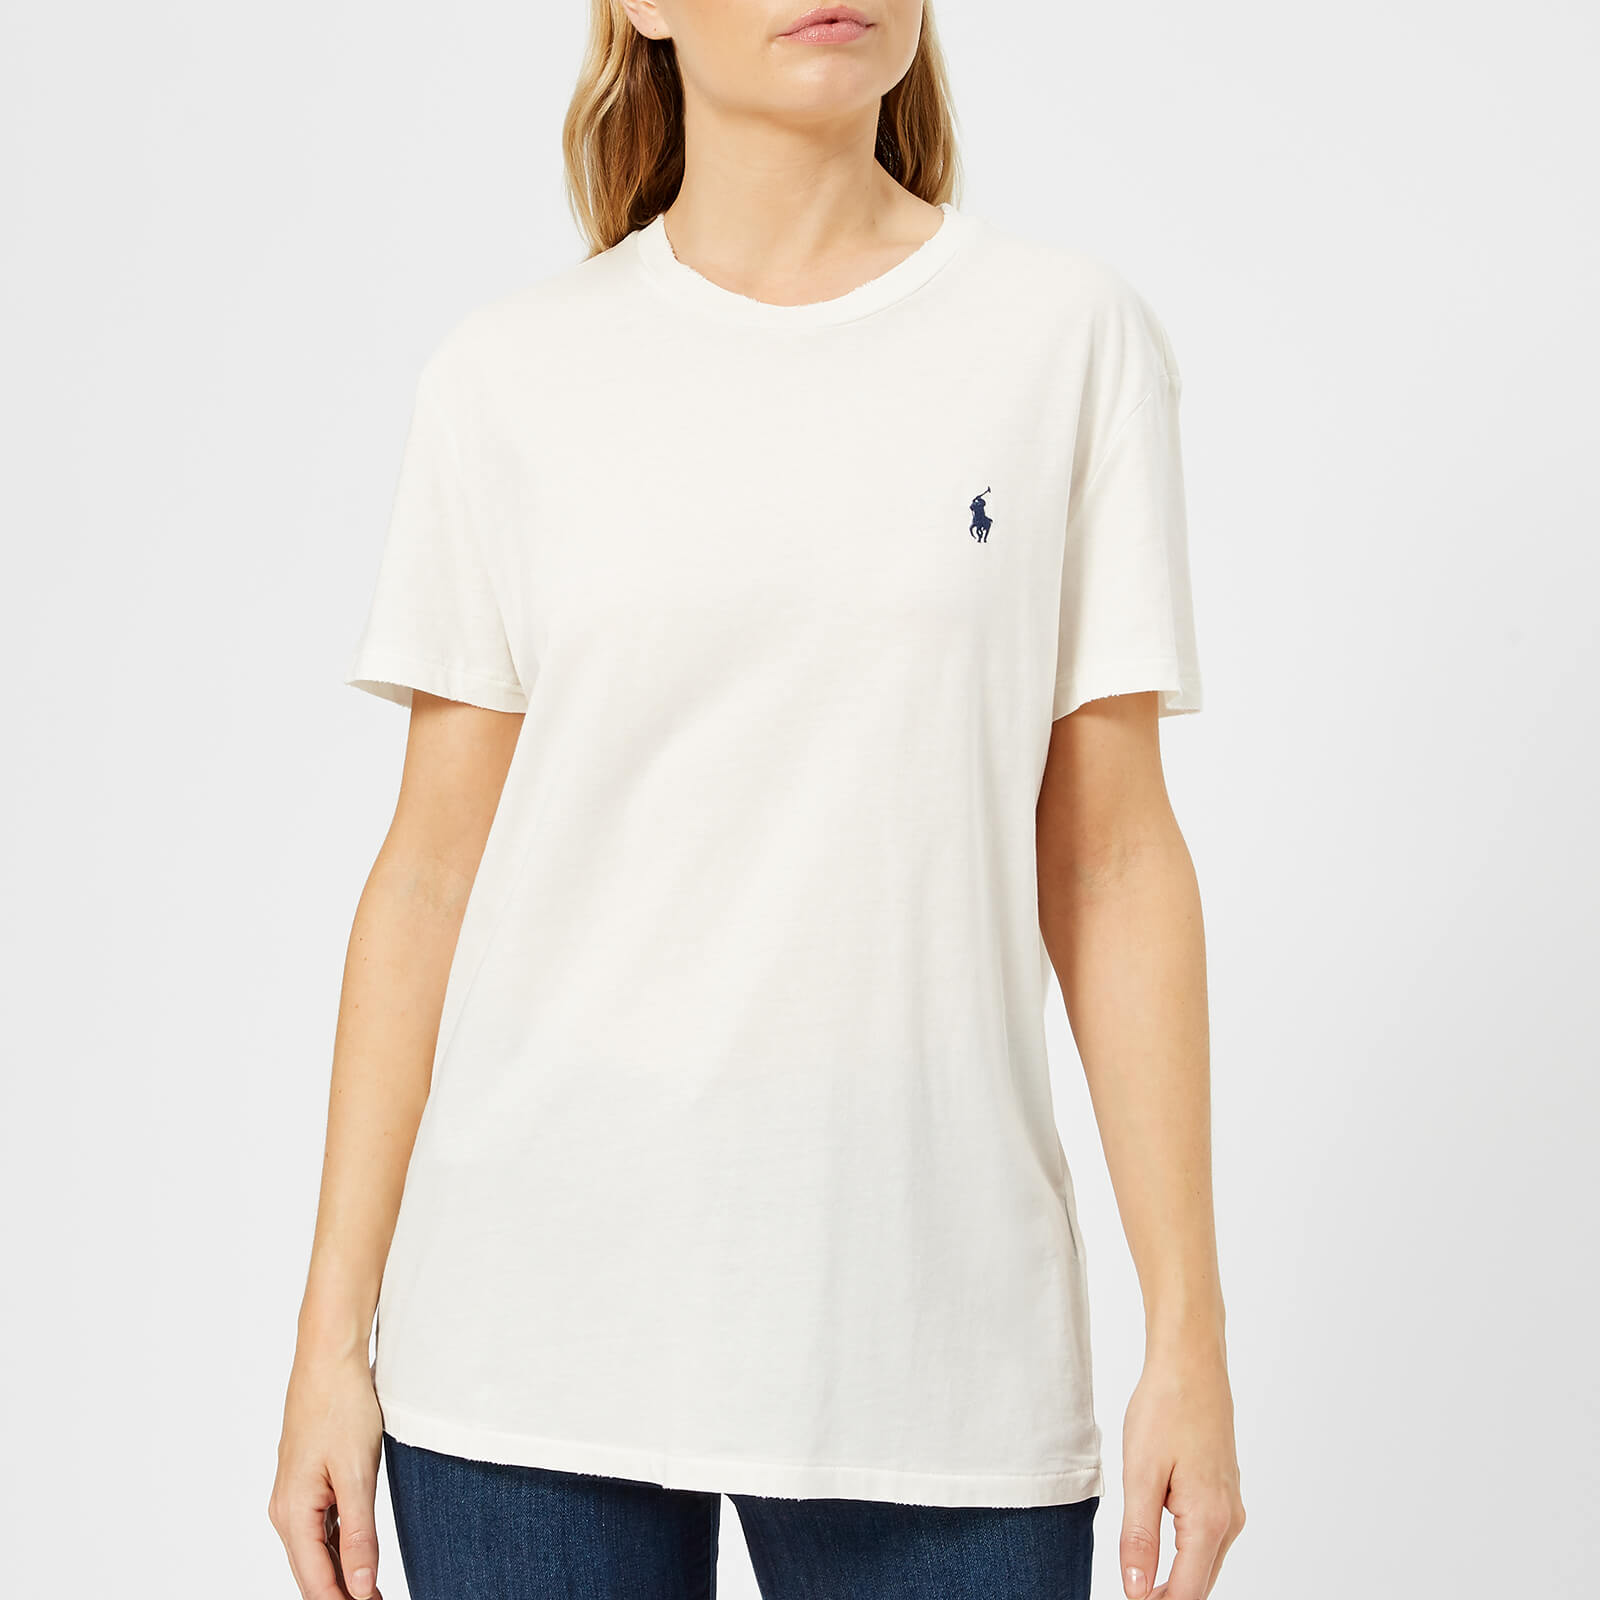 33f5f3895 Polo Ralph Lauren Women's Oversized Logo T-Shirt - Nevis - Free UK Delivery  over £50